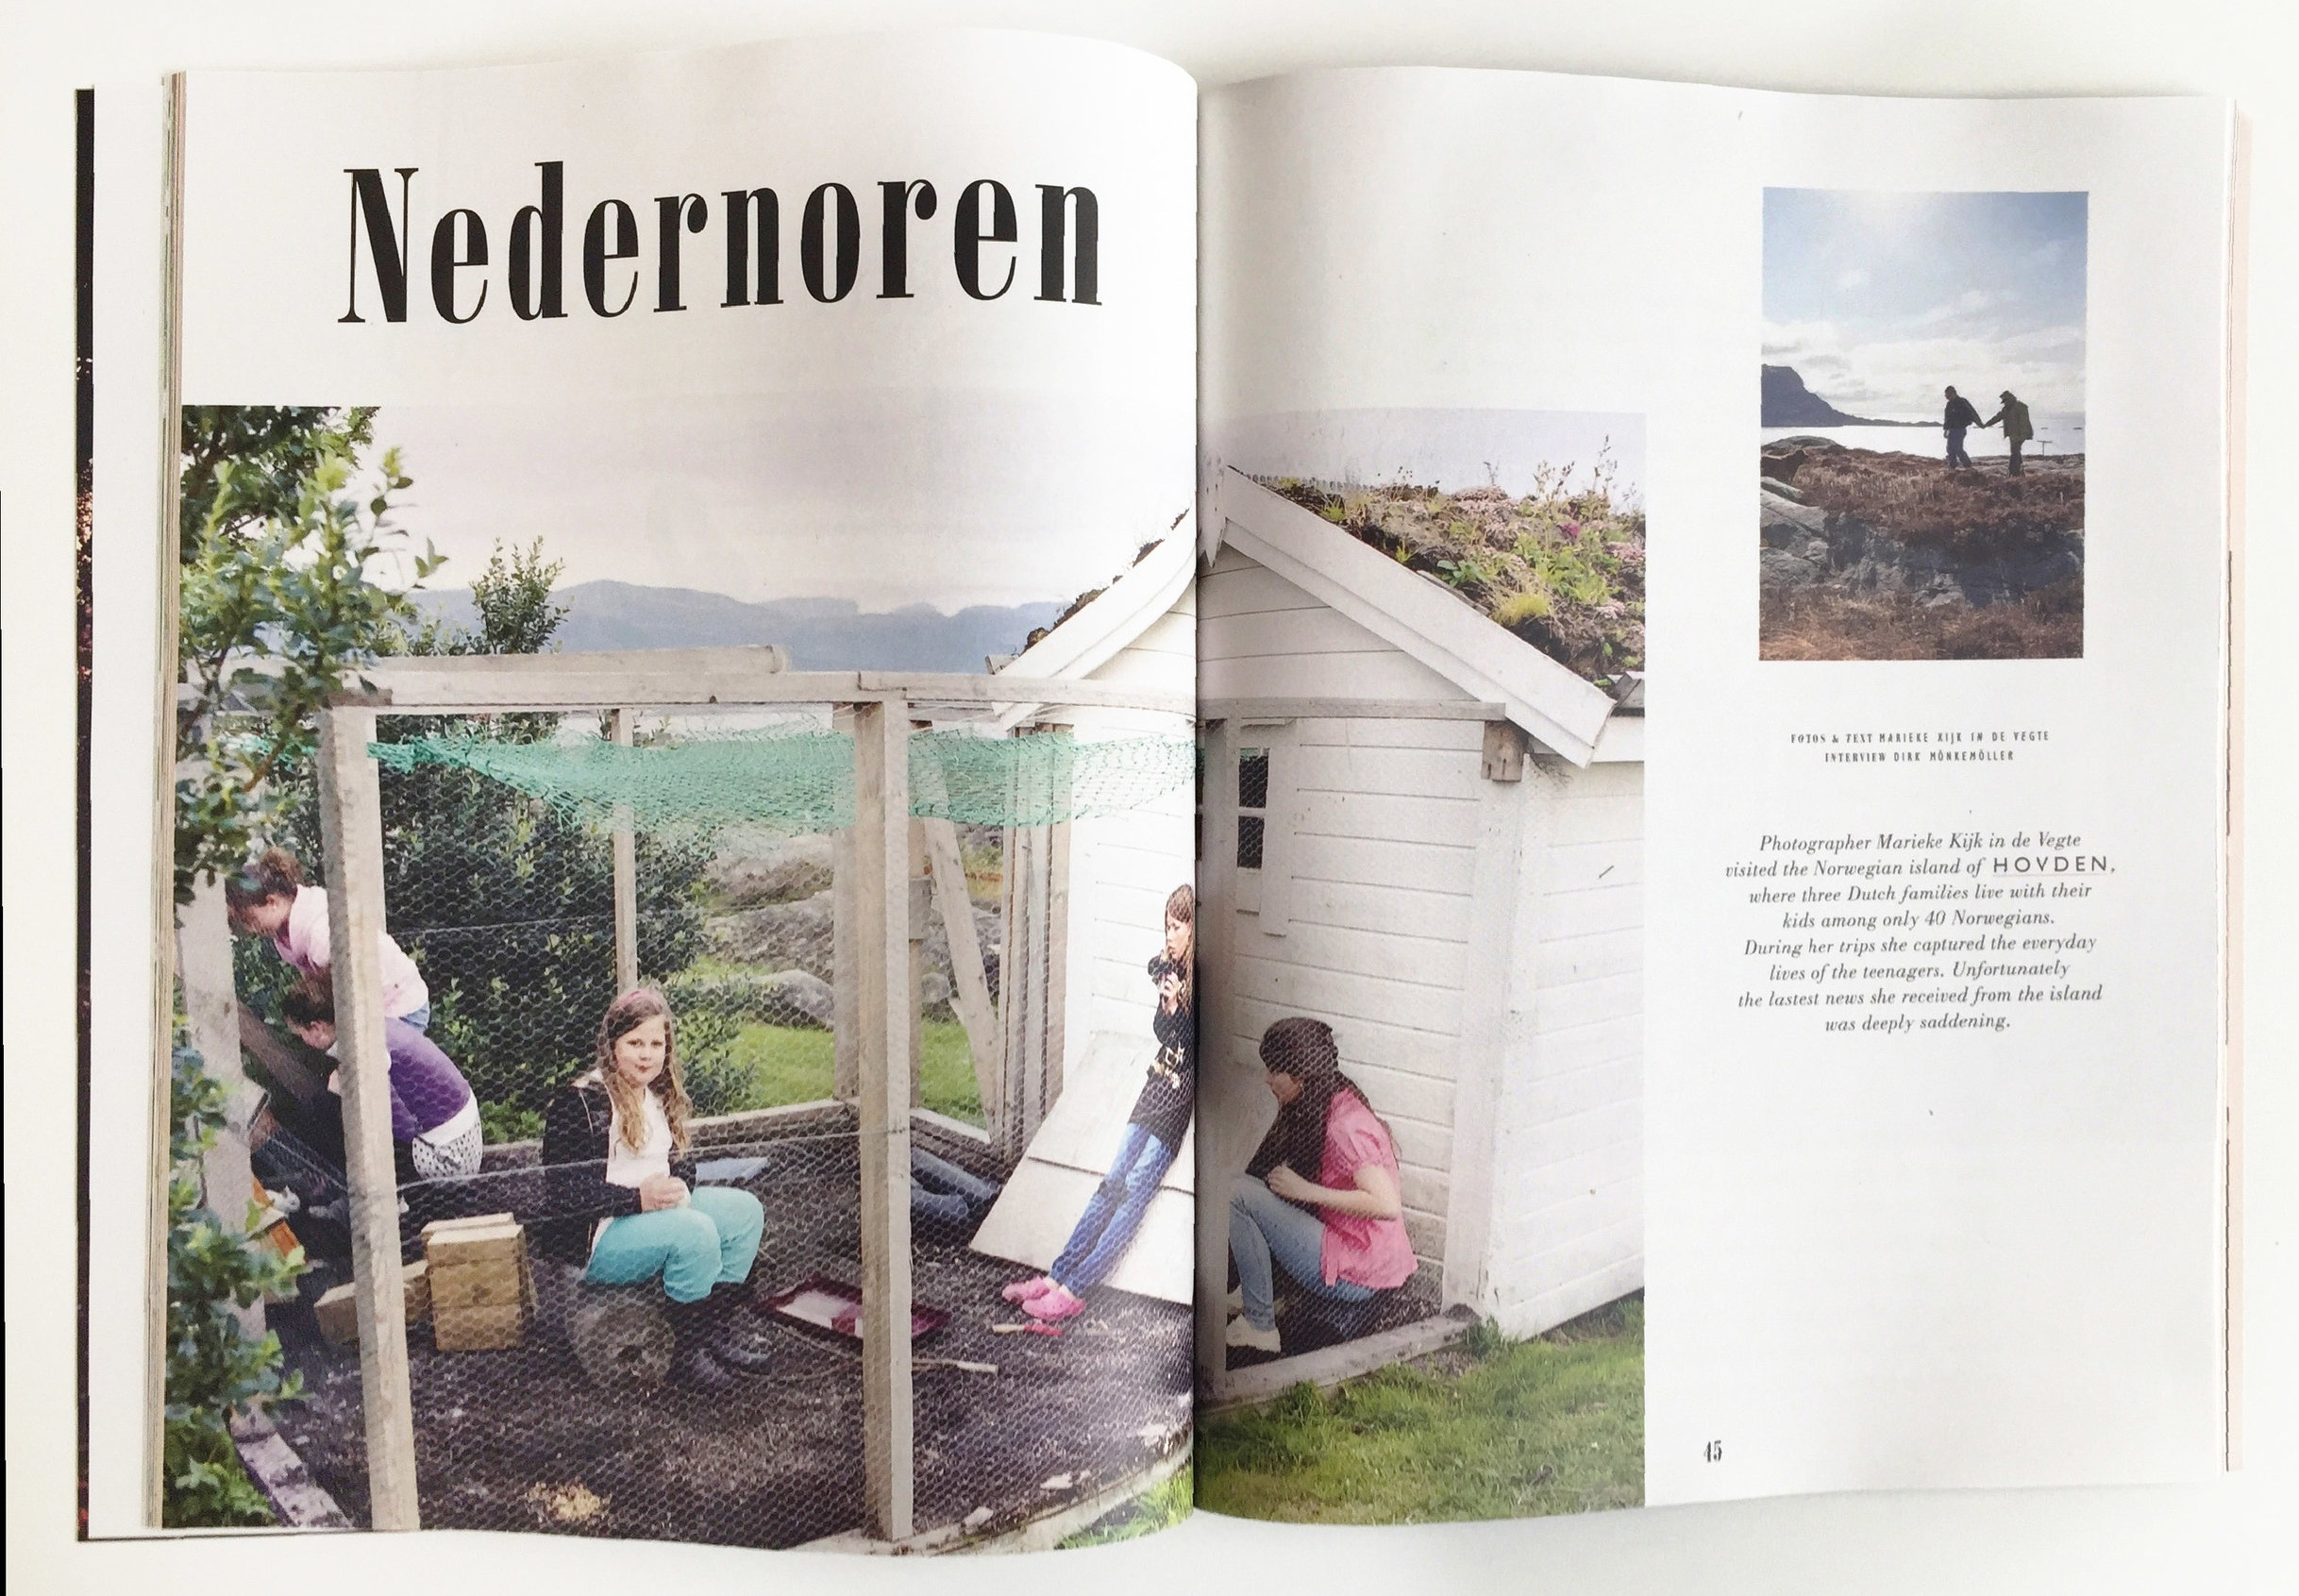 Photographer Marieke Kijk in de Vegte visited the Norwegian island of Hovden, where three Dutch families live with their kids among only 40 Norwegians. During her trips she captured the everyday lives of the teenagers. Unfortunately the lastest news she received from the island was deeply saddening.  Read more in  The Weekender .